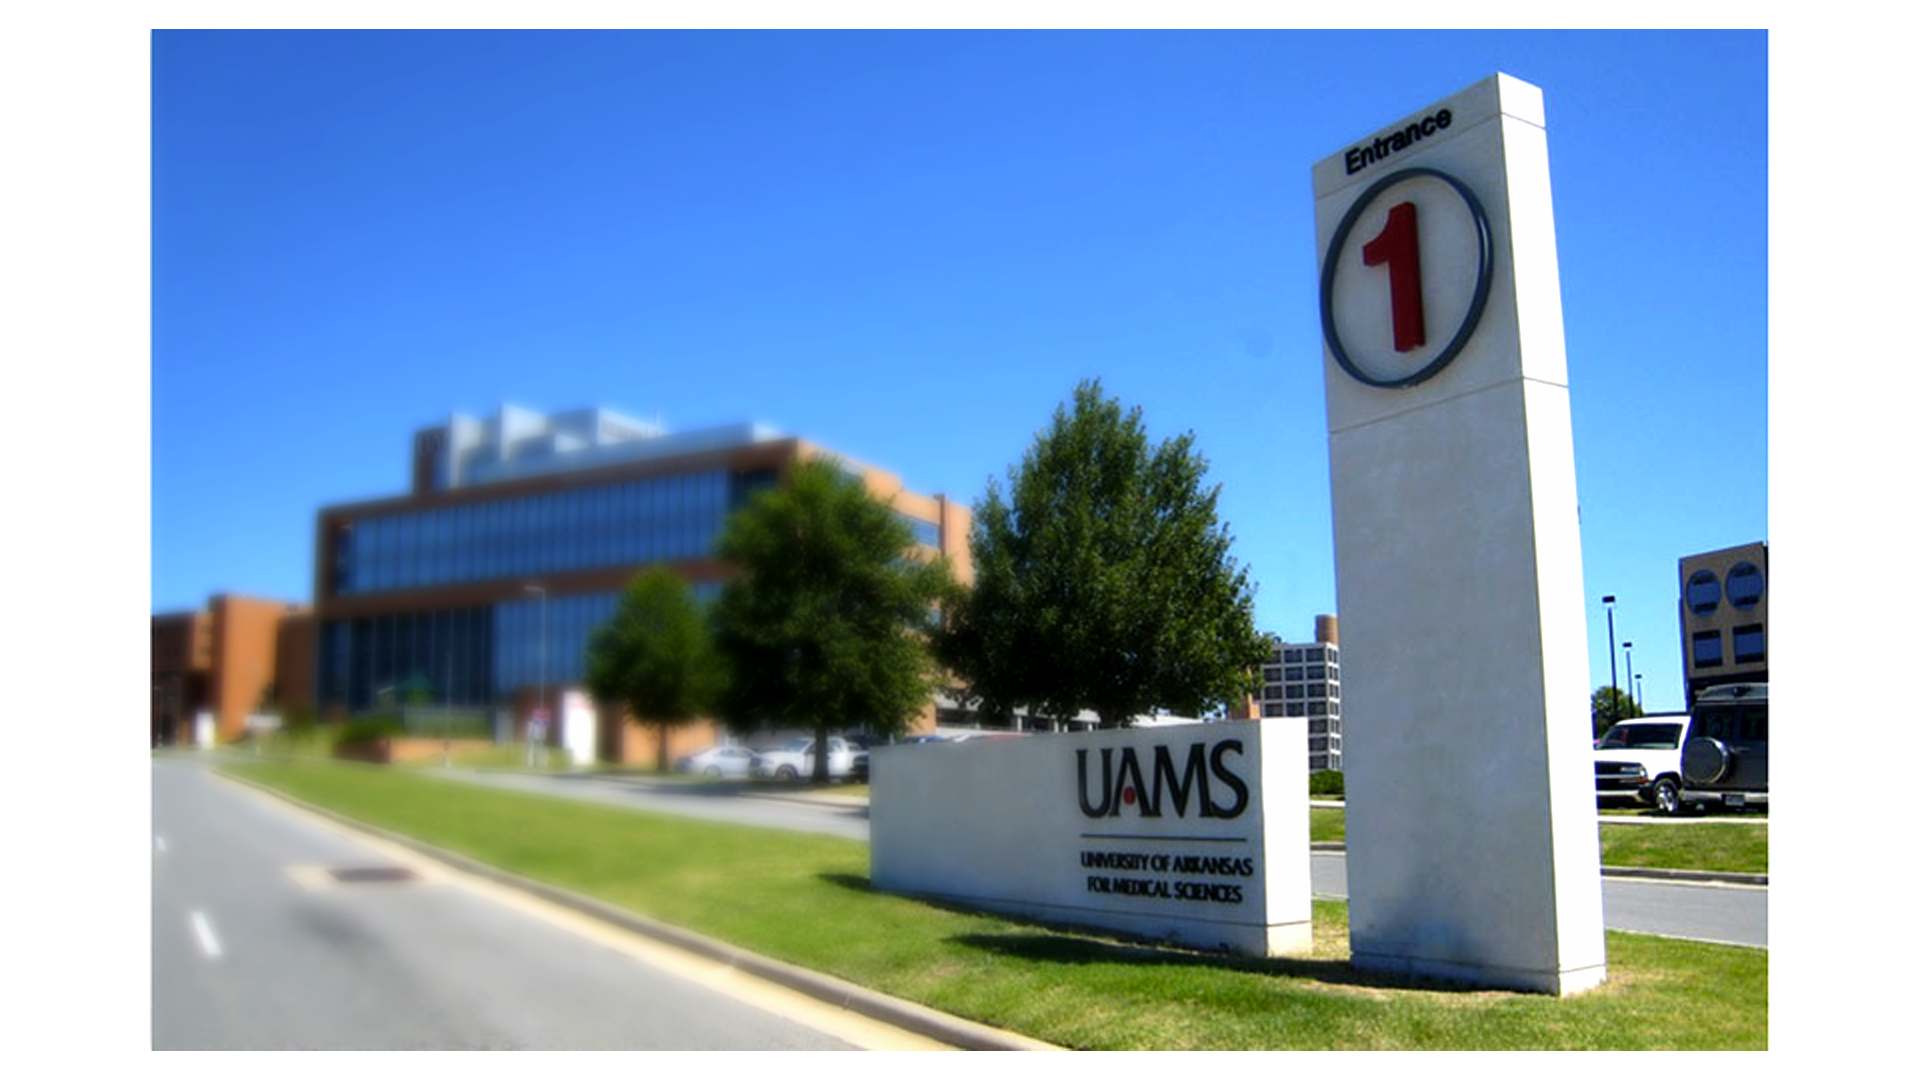 Physical_signage_UAMS_01.png